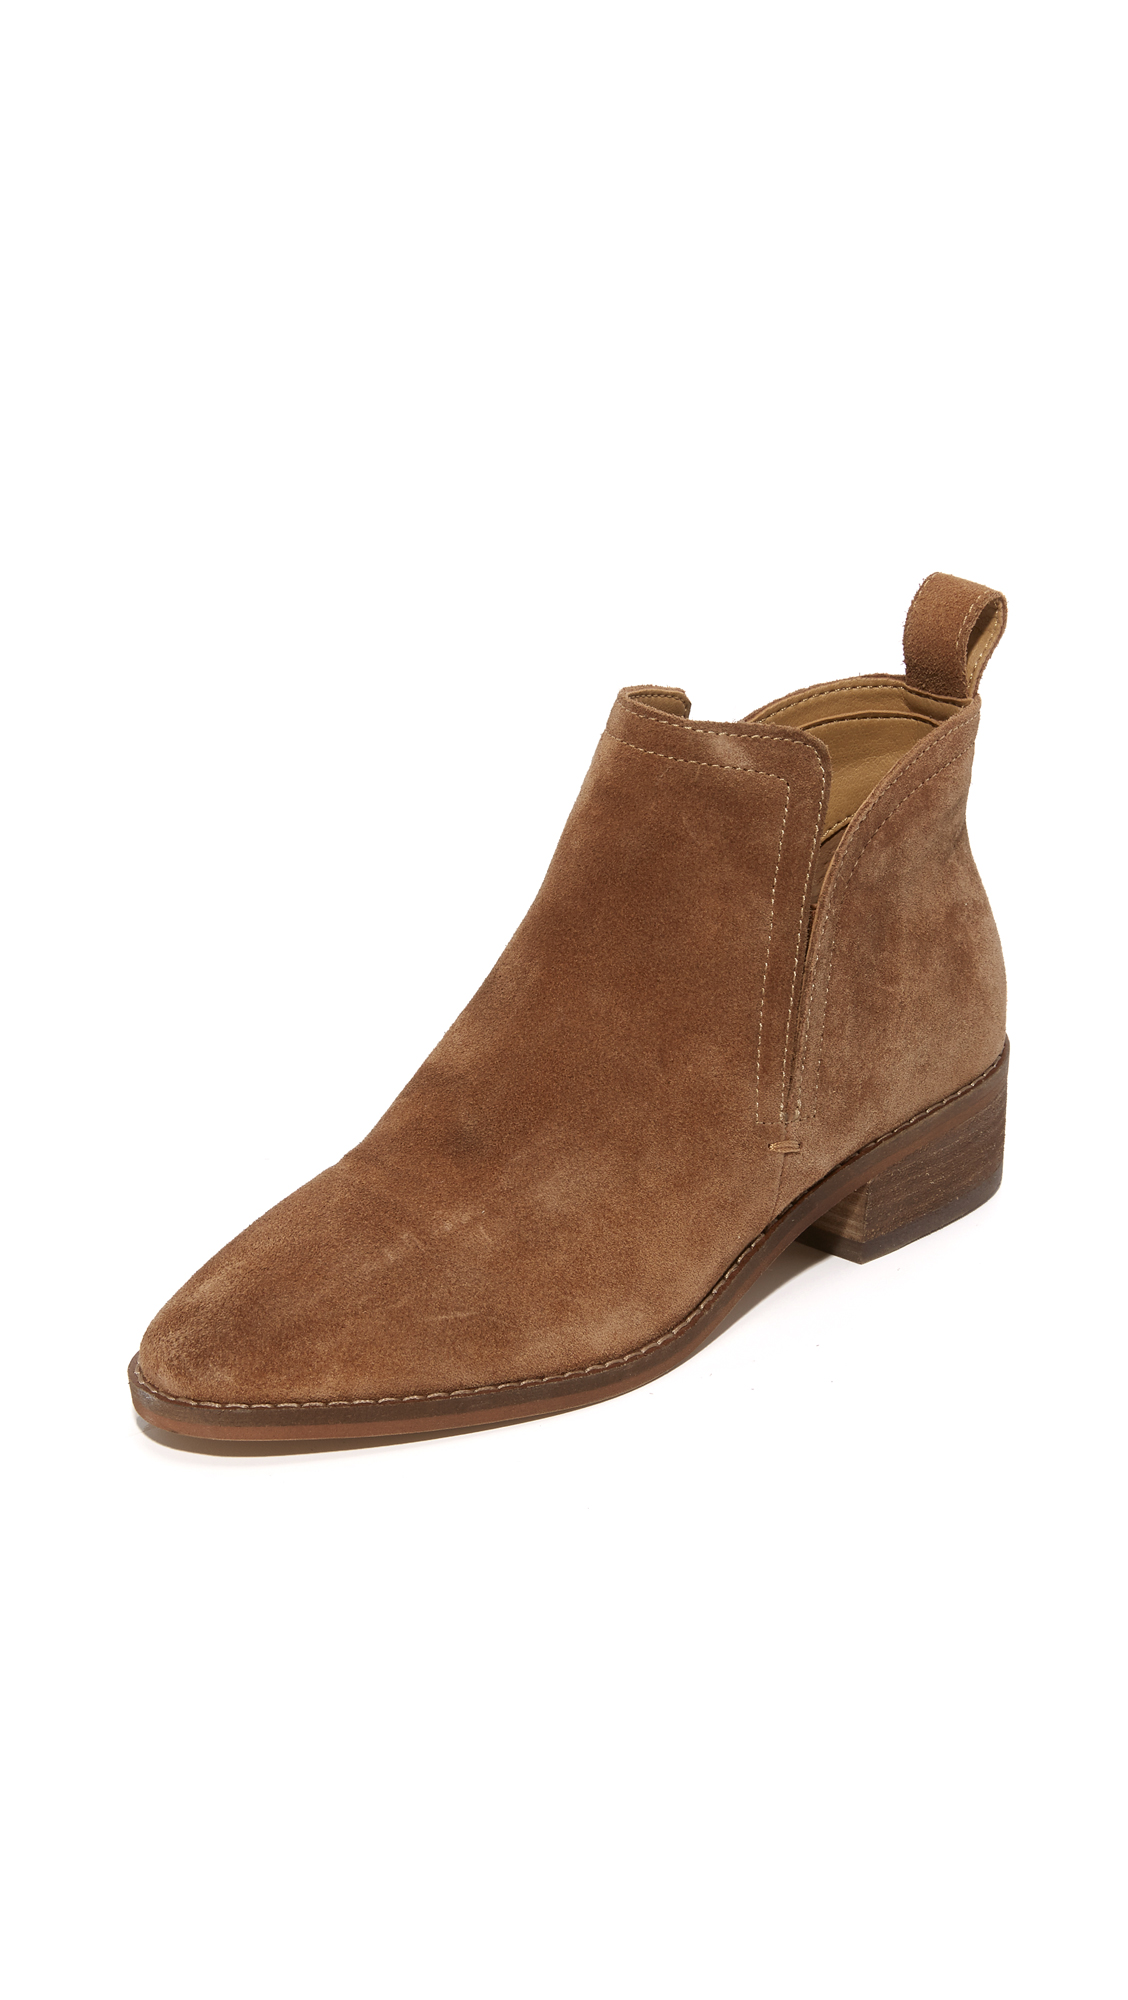 Dolce Vita Tessey Booties Shopbop D Island Shoes Casual Zappato England Suede Dark Brown